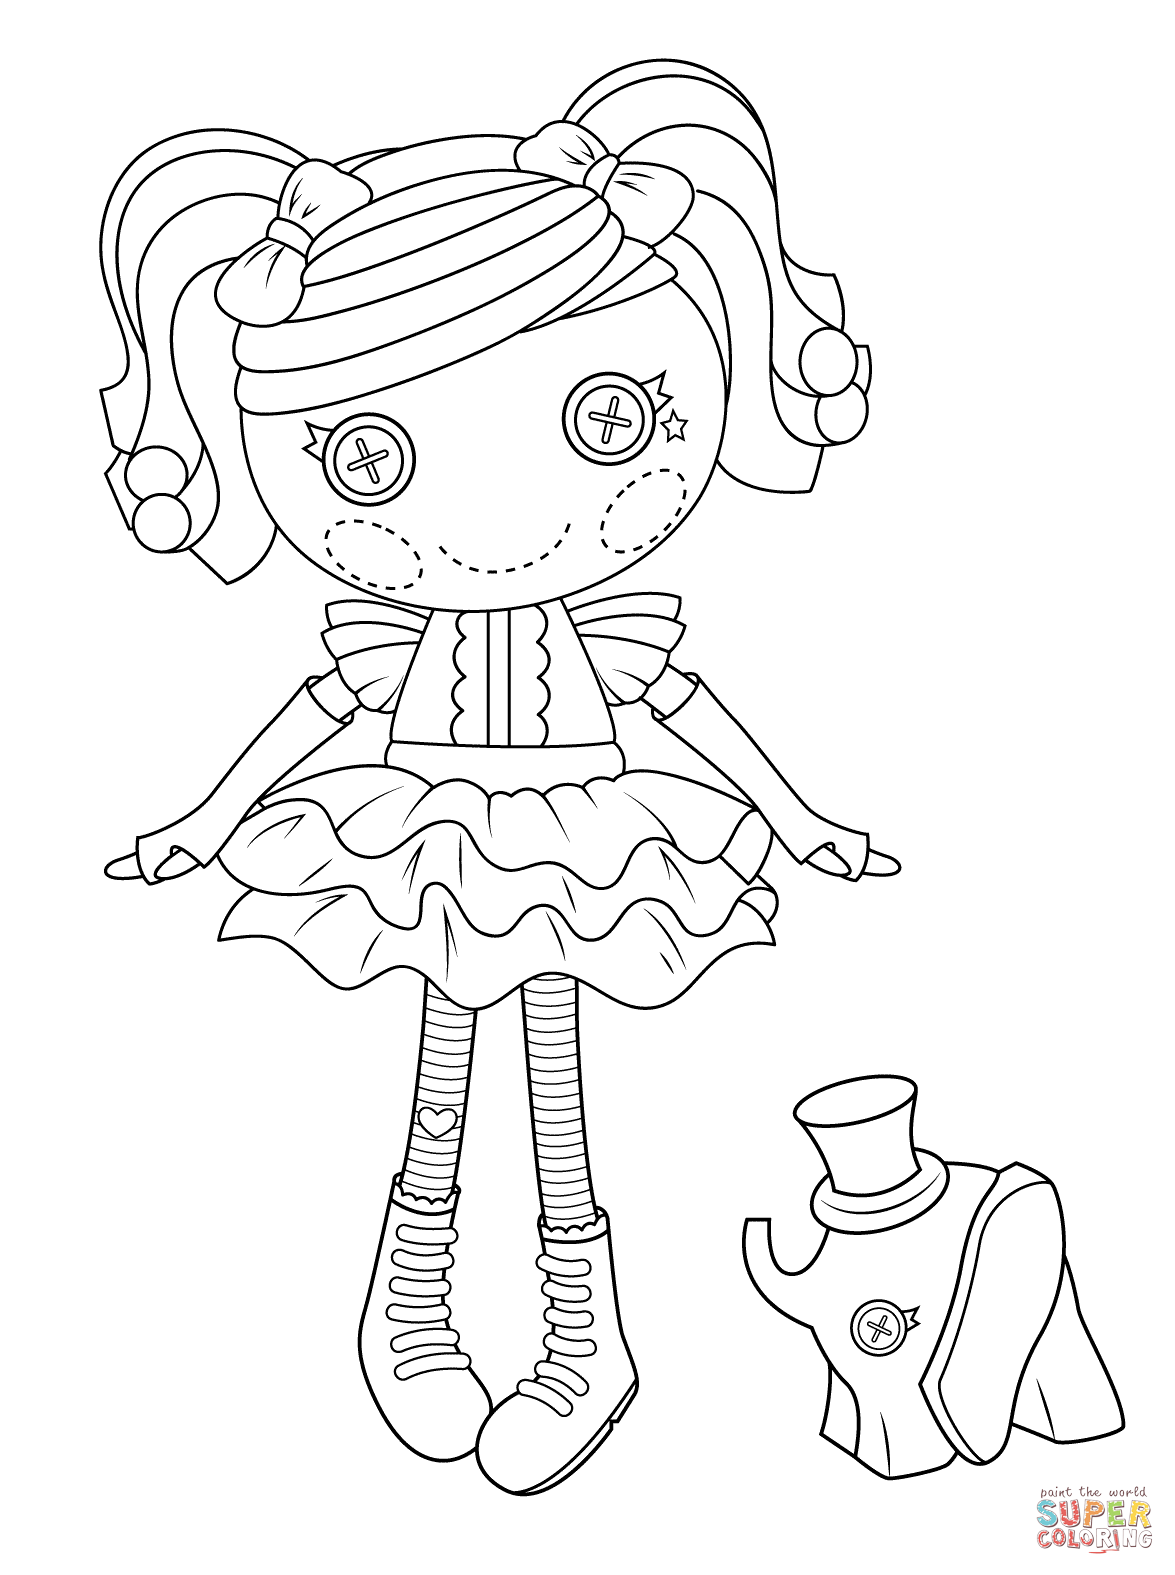 Lalaloopsy Peanut Big Top Coloring Page